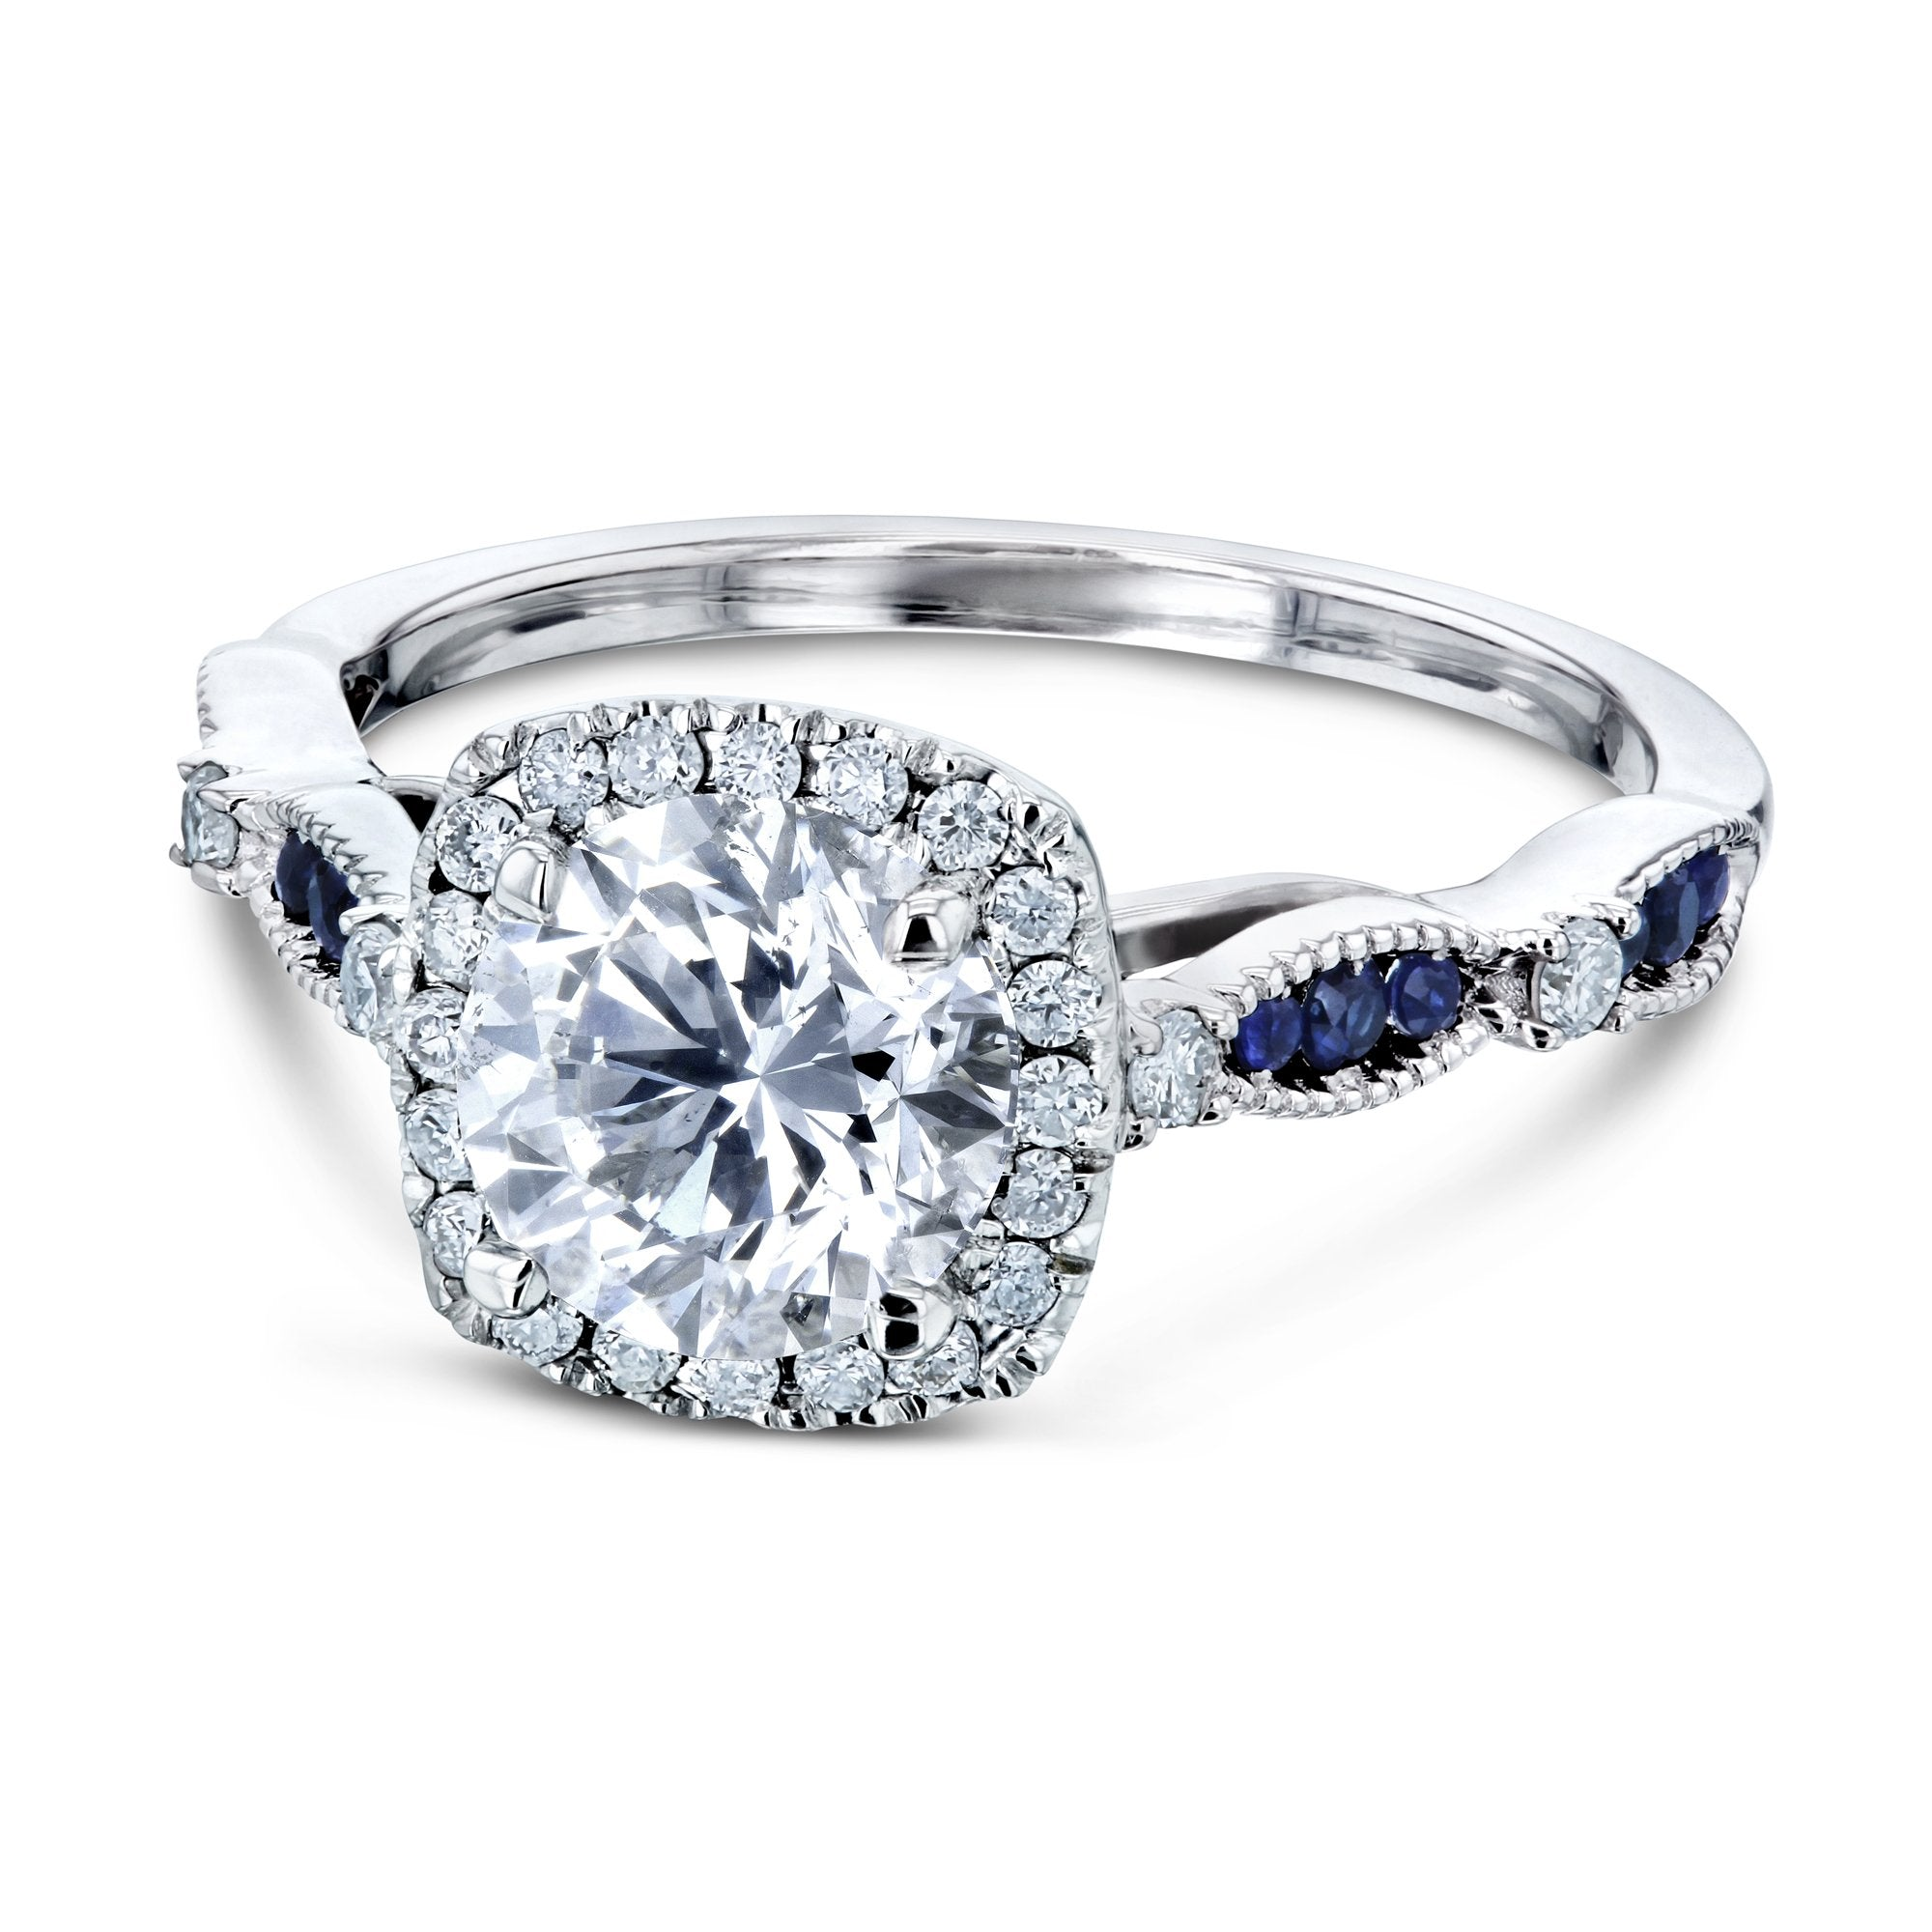 Compare Round Diamond and Blue Sapphire Ring - 11.0